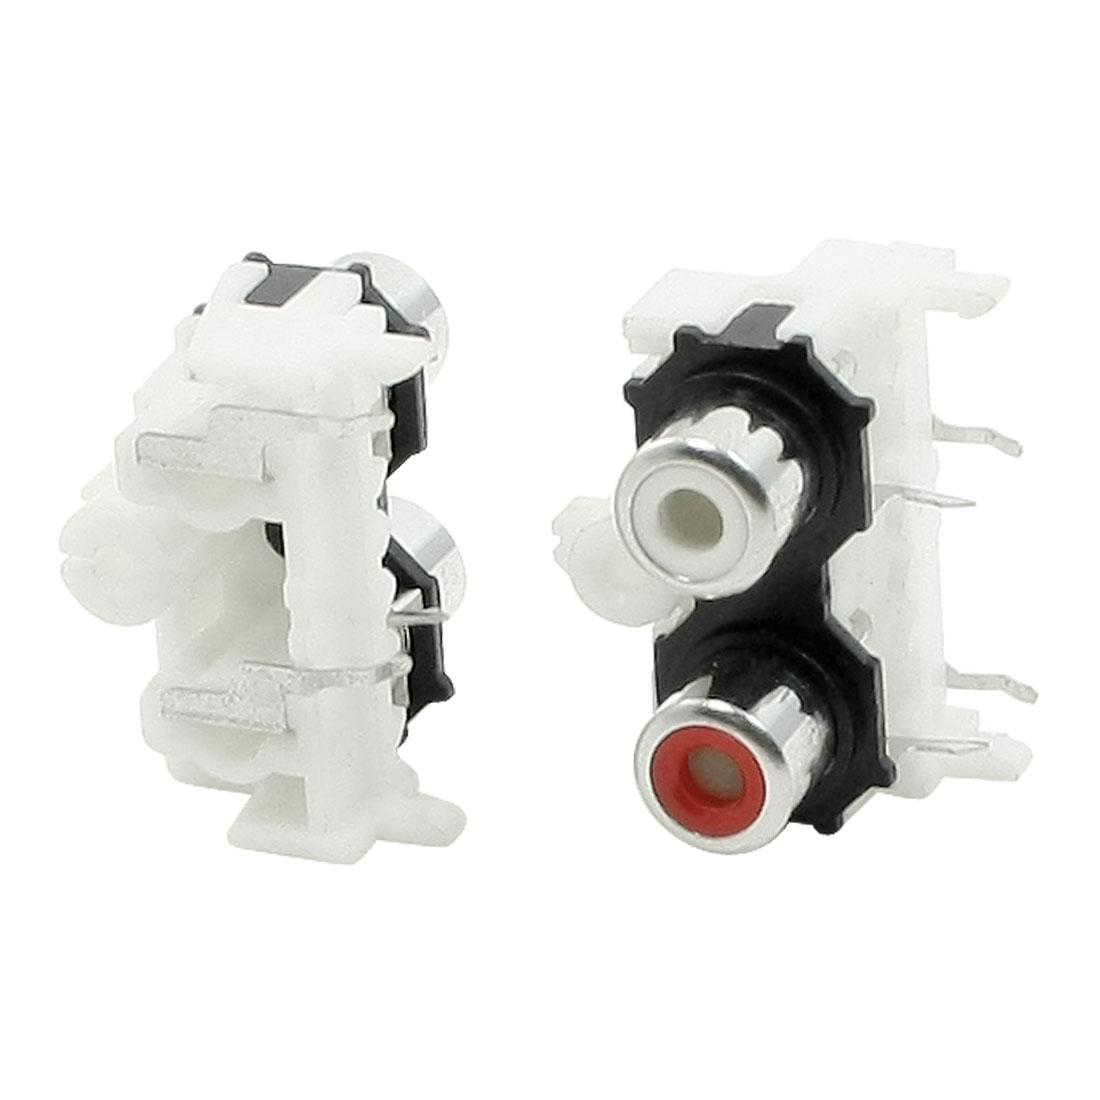 2 Pcs White Red Dual Port Audio Video RCA Jack Female PCB Connector